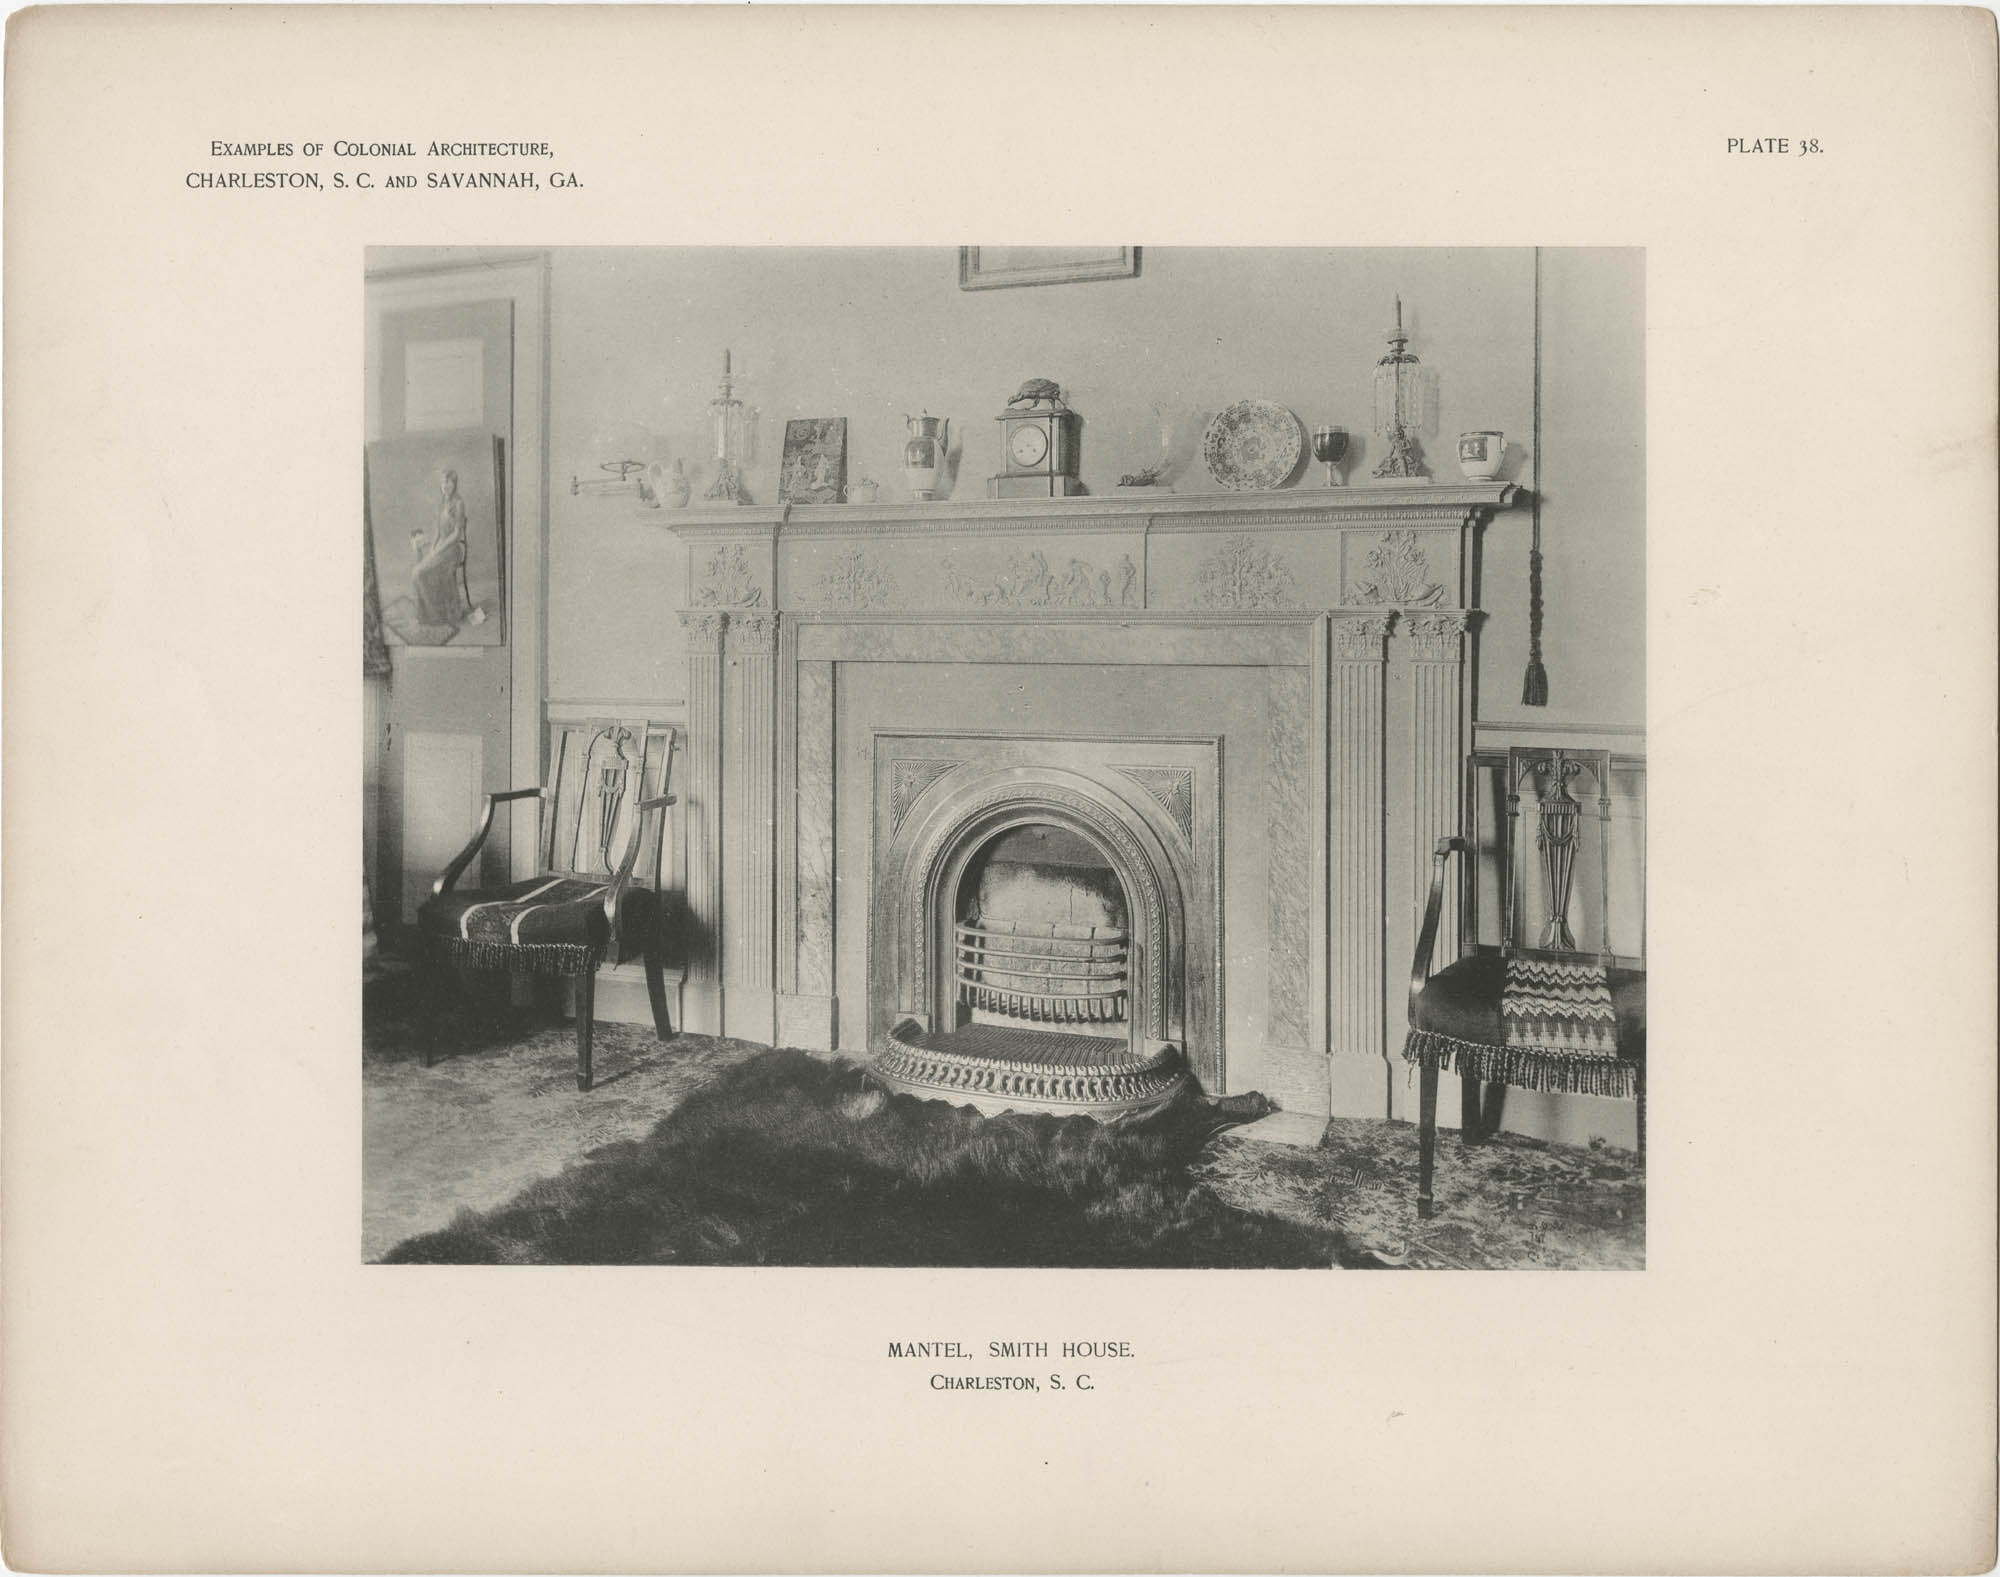 Plate 38: Mantel, Smith House, Charleston, S.C.